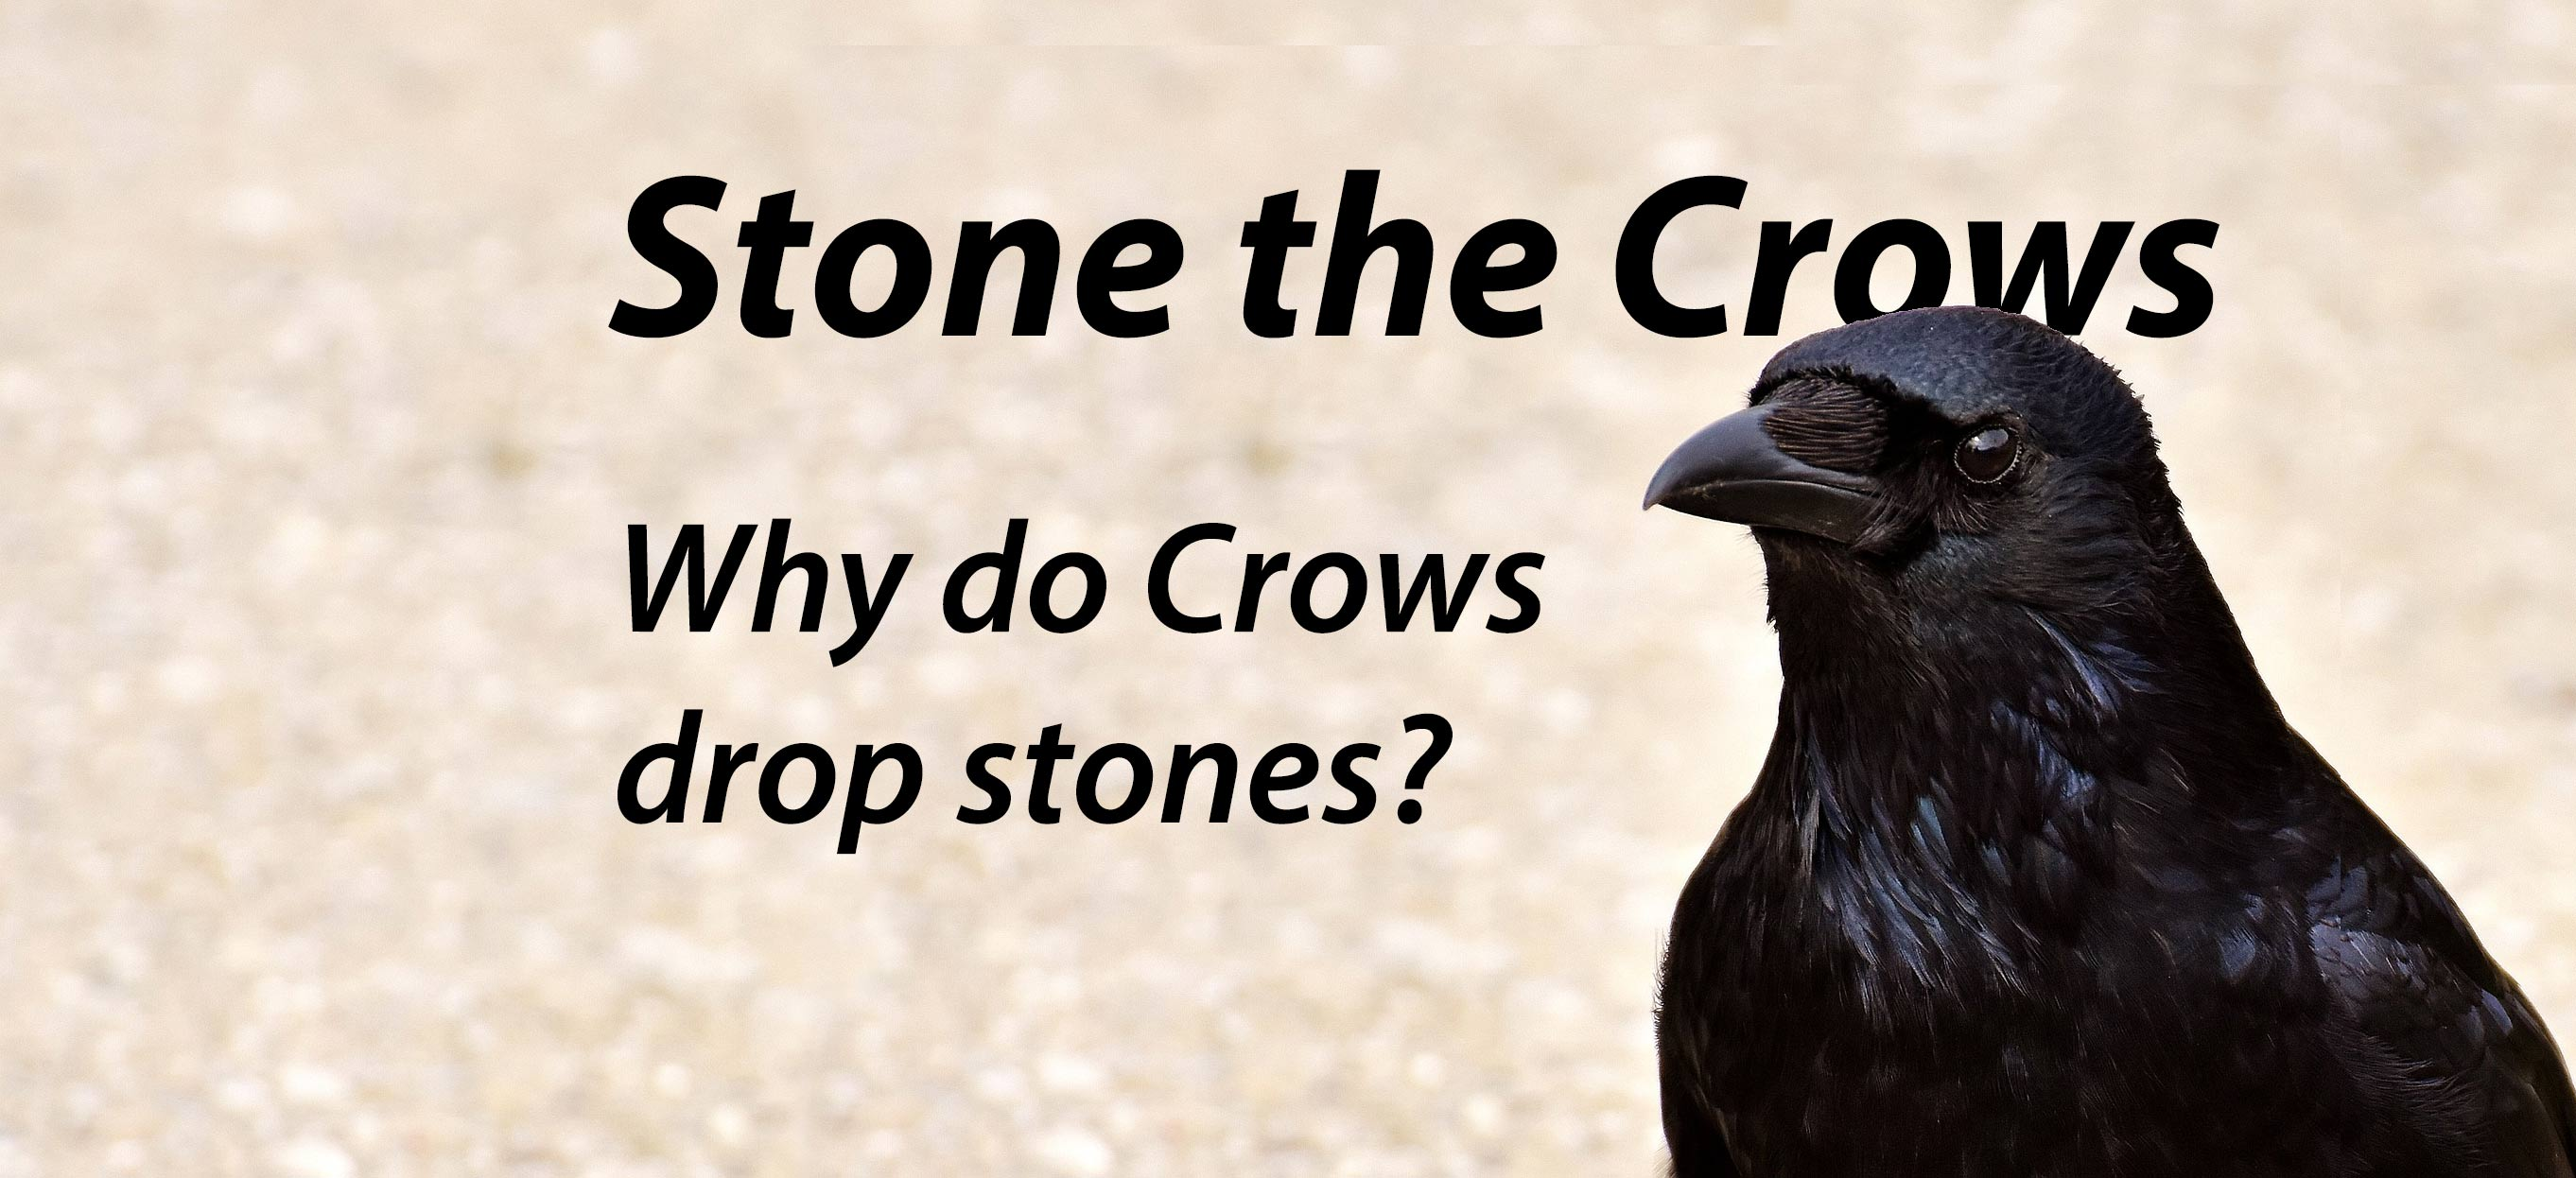 Nuisance crows drop stones image